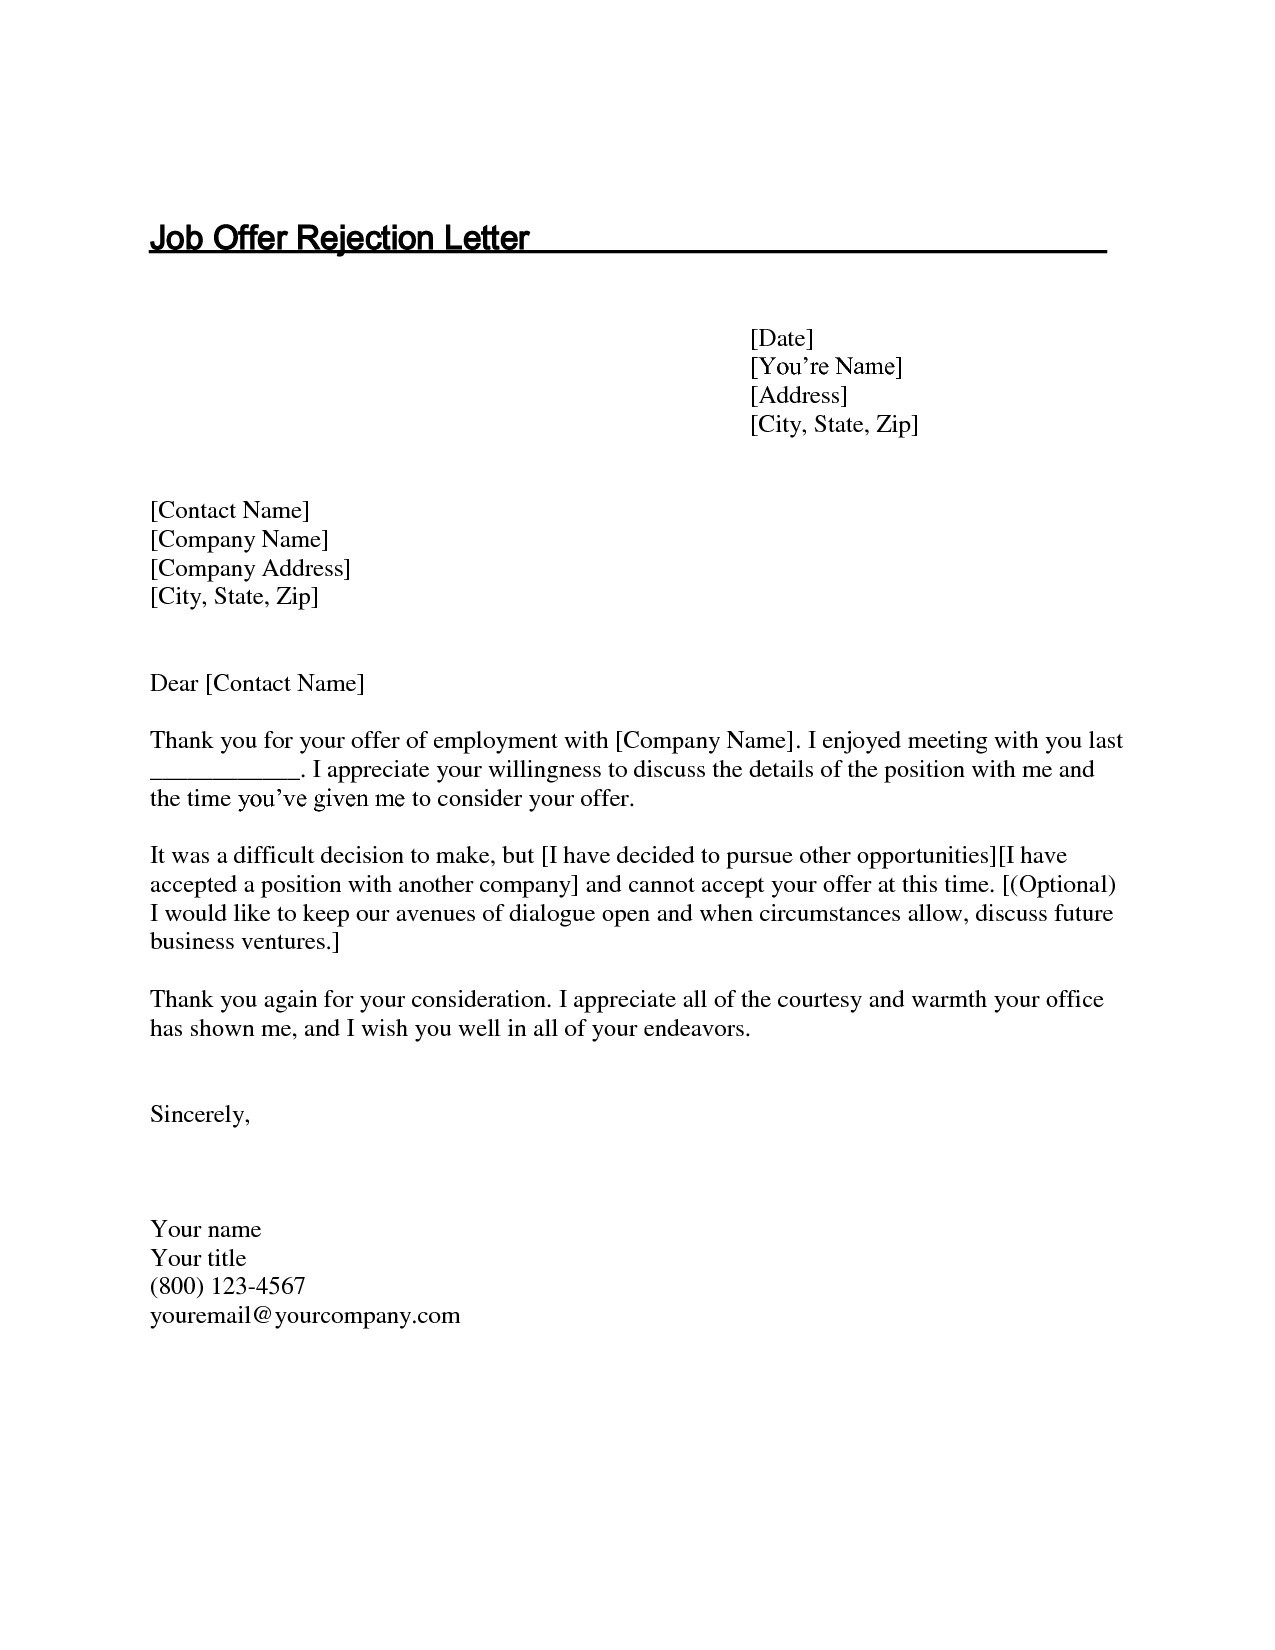 job offer rejection letter offer decline letter template samples letter 10881 | thank you letter after job fer decline luxury new rejection letter of job offer decline letter template